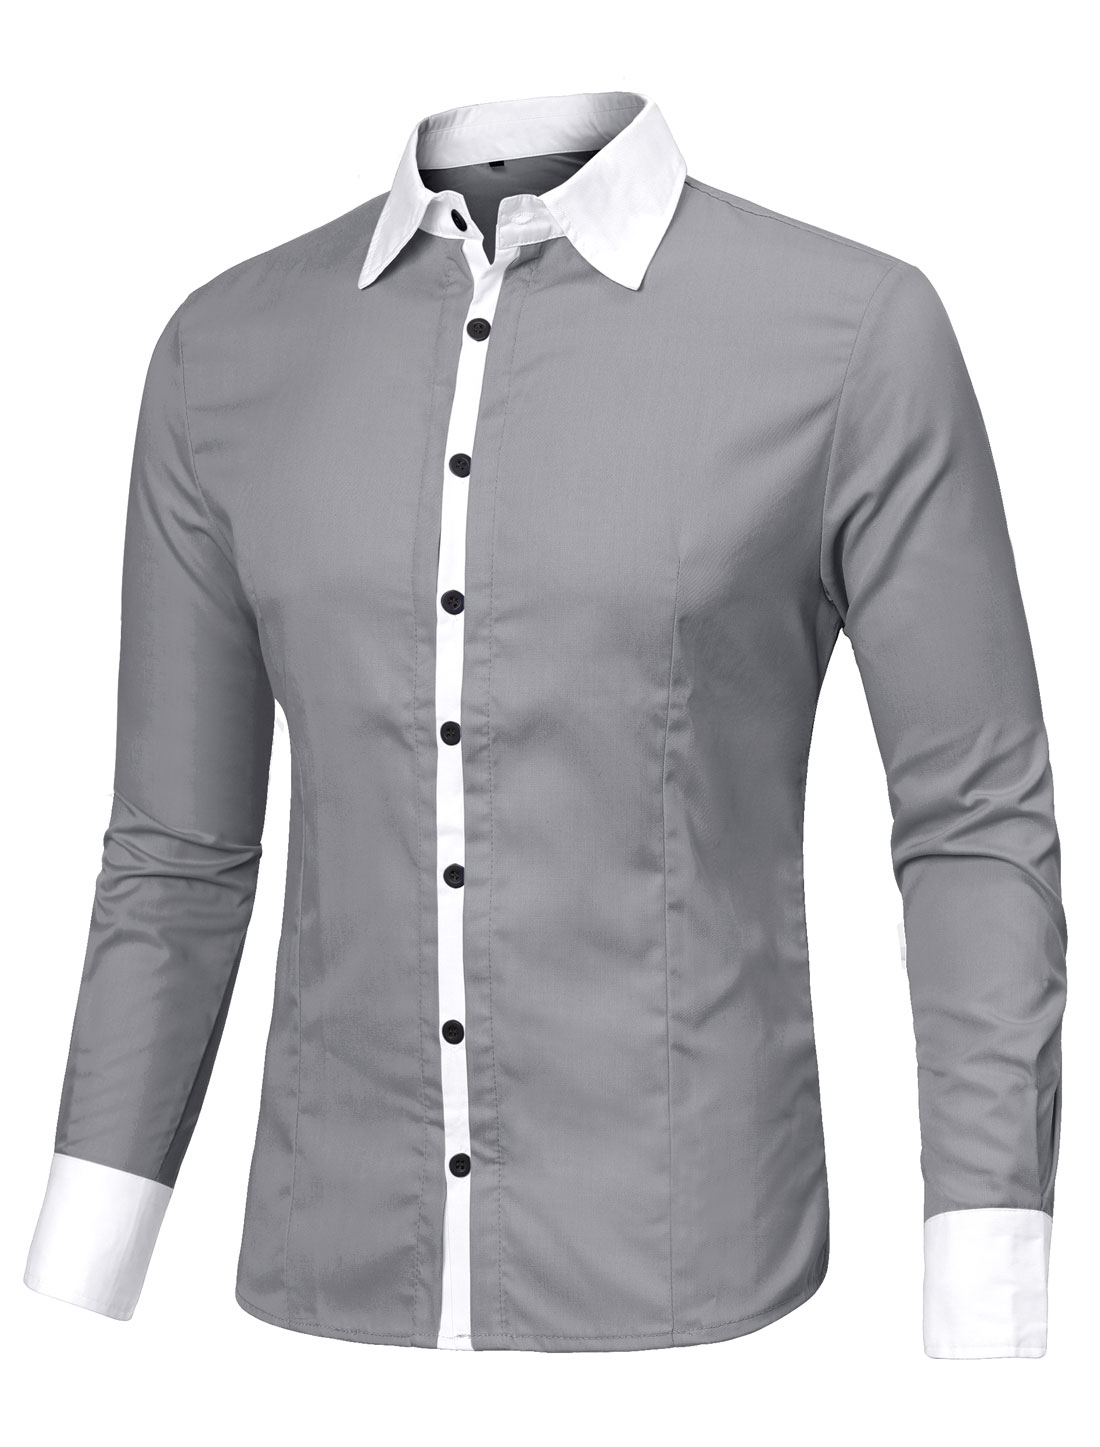 Mens Light Gray Tight-fitting Long Sleeve NEW Trendy Shirt Tops S